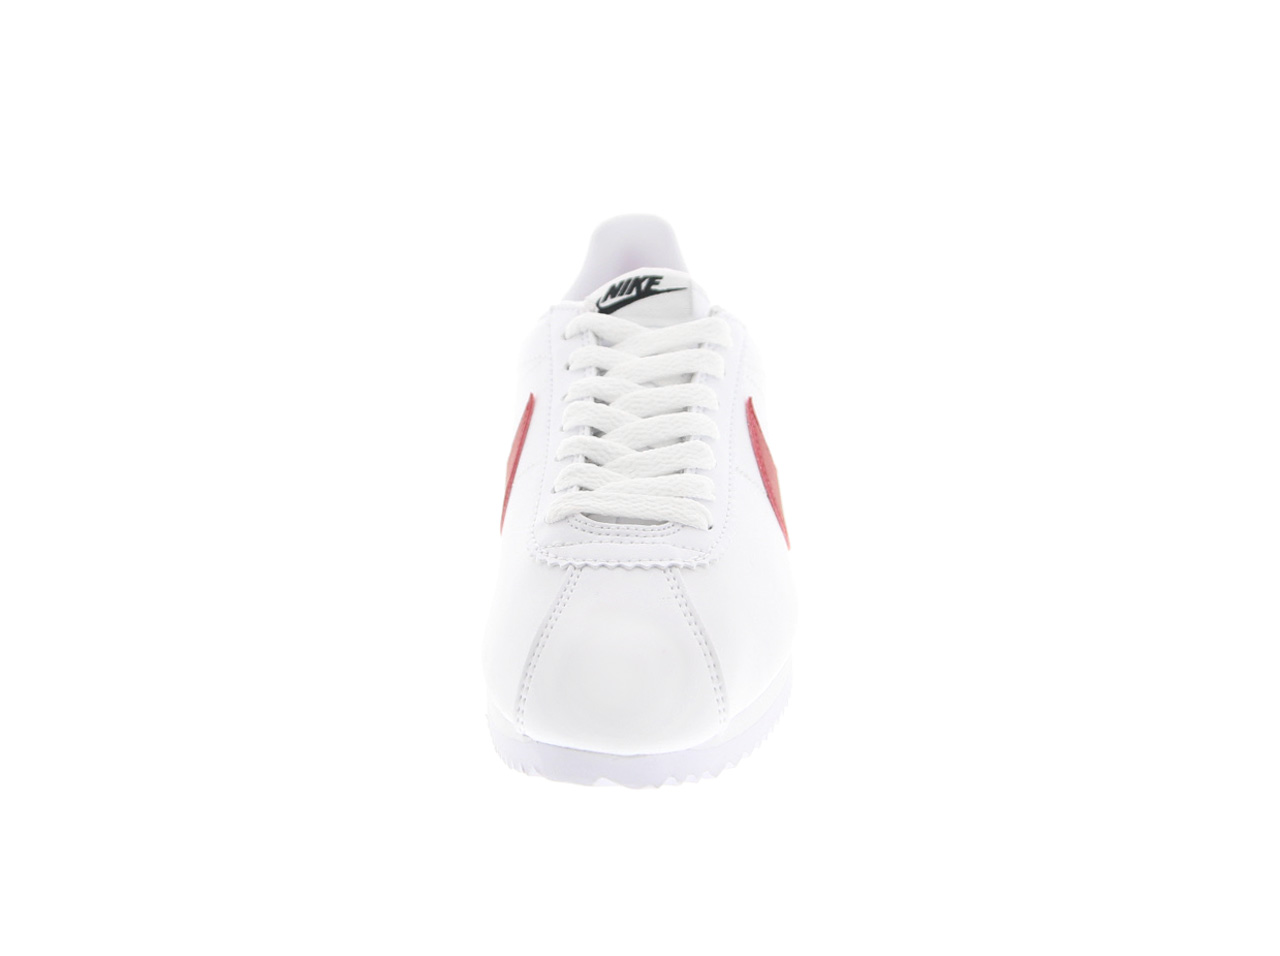 NIKE WMNS CLASSIC CORTEZ LEATHER(807471-103)白/酒吧城紅/酒吧城皇家